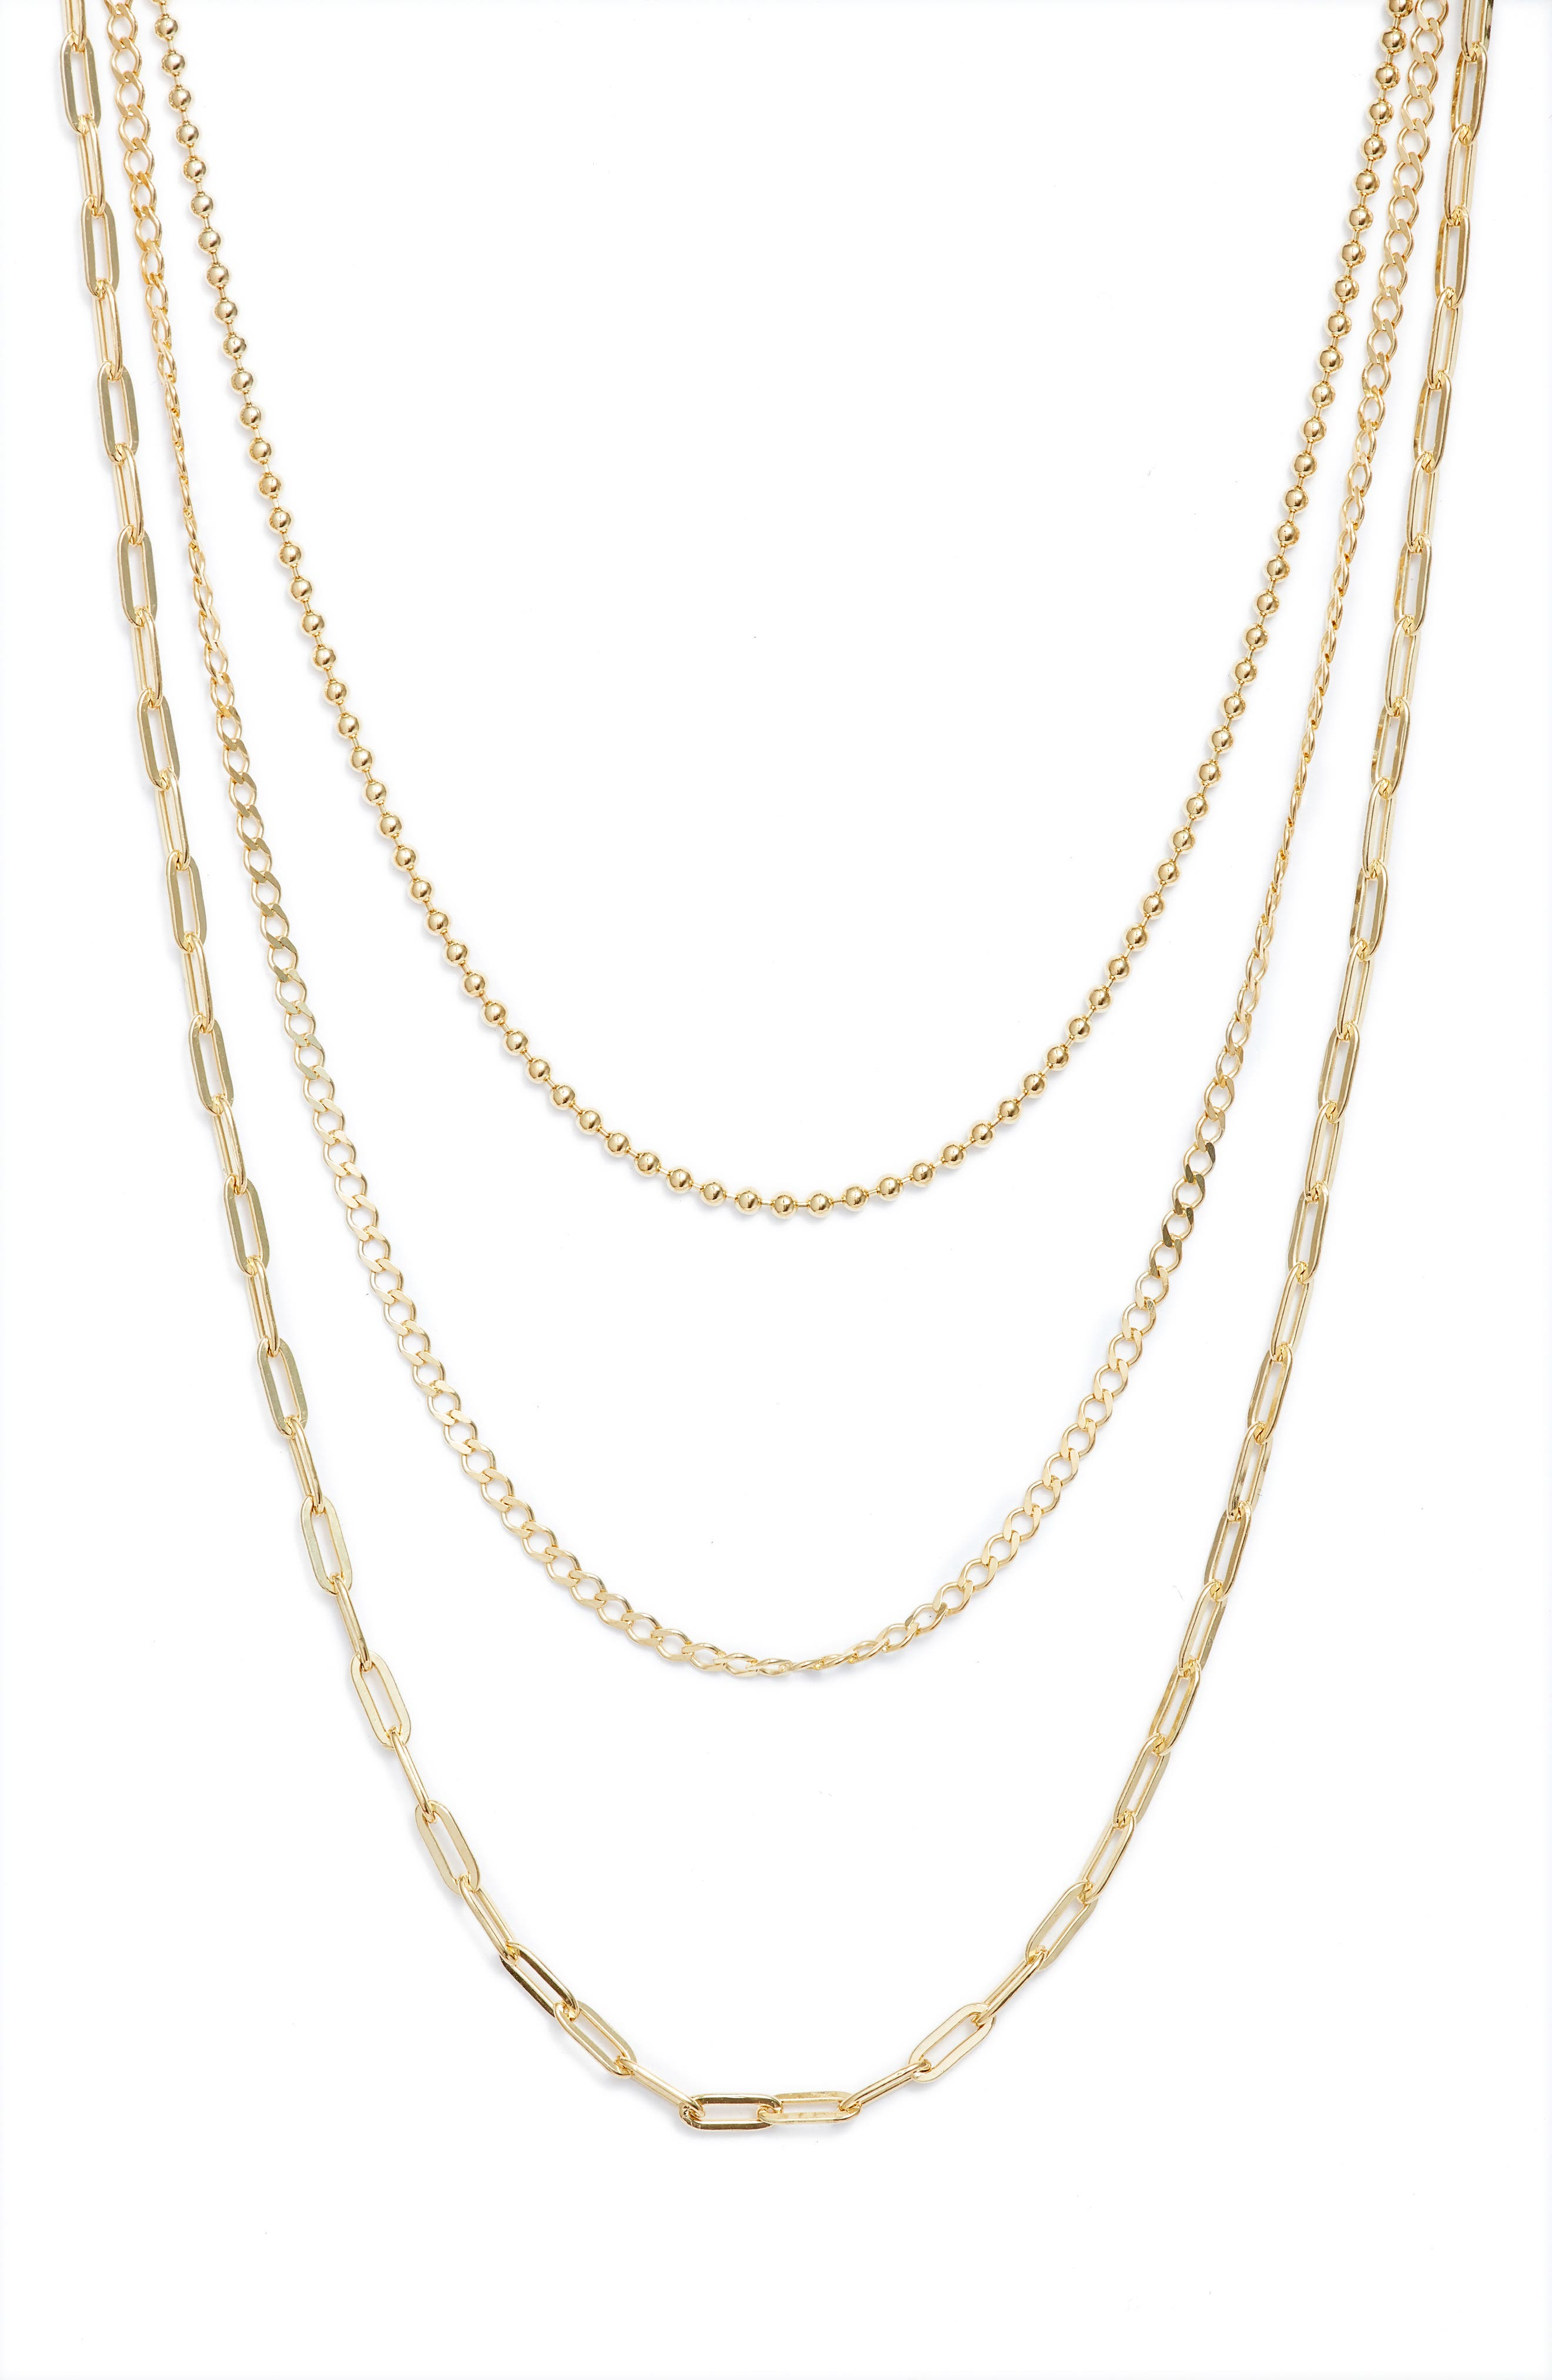 combined necklace chain necklaces,ladies chain necklace, gold plated chain necklaces Gold plated triple chain combo necklace